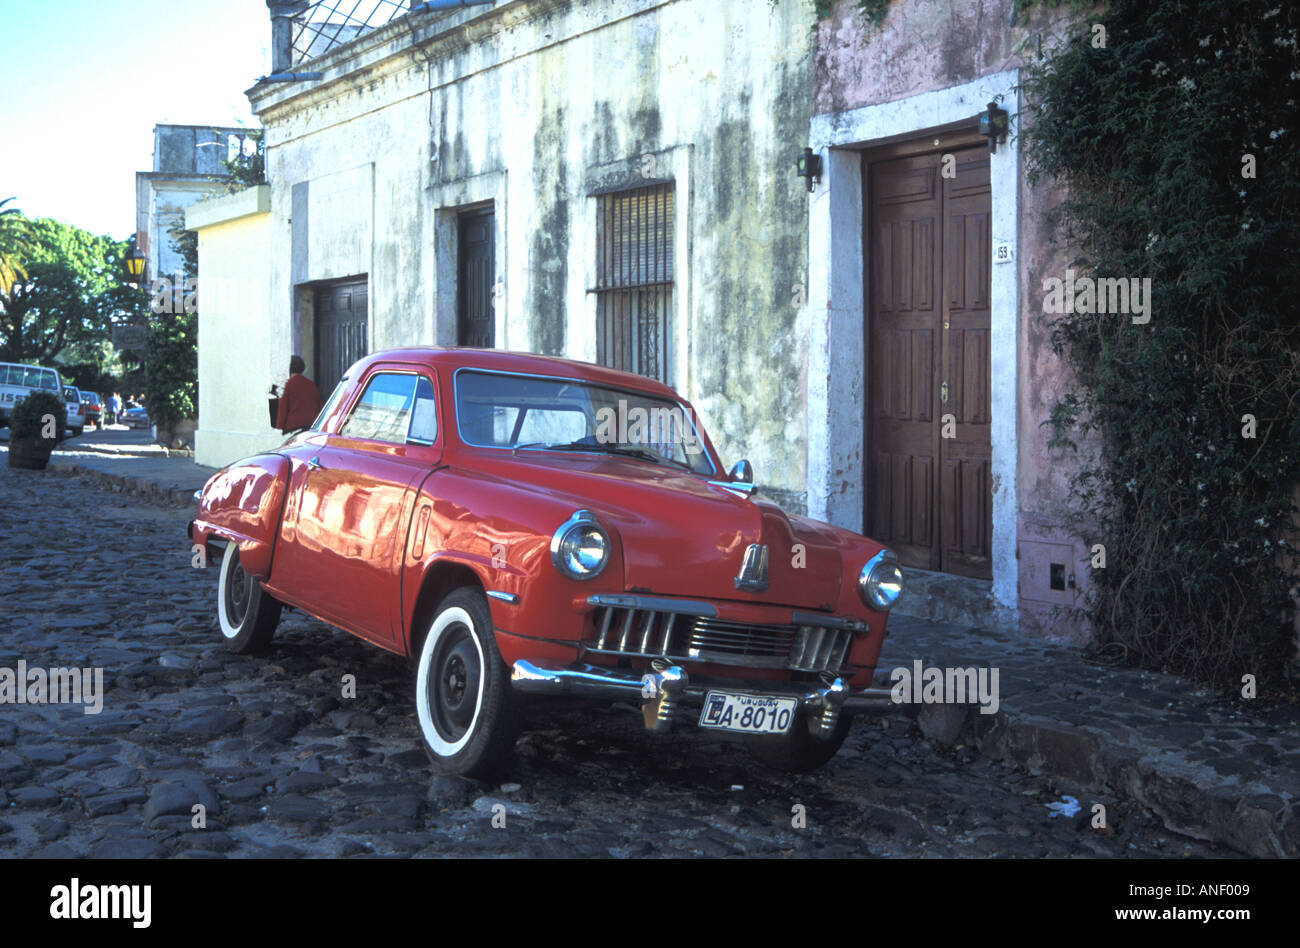 Classic Car with Whitewall Tyres Colonia Uruguay - Stock Image